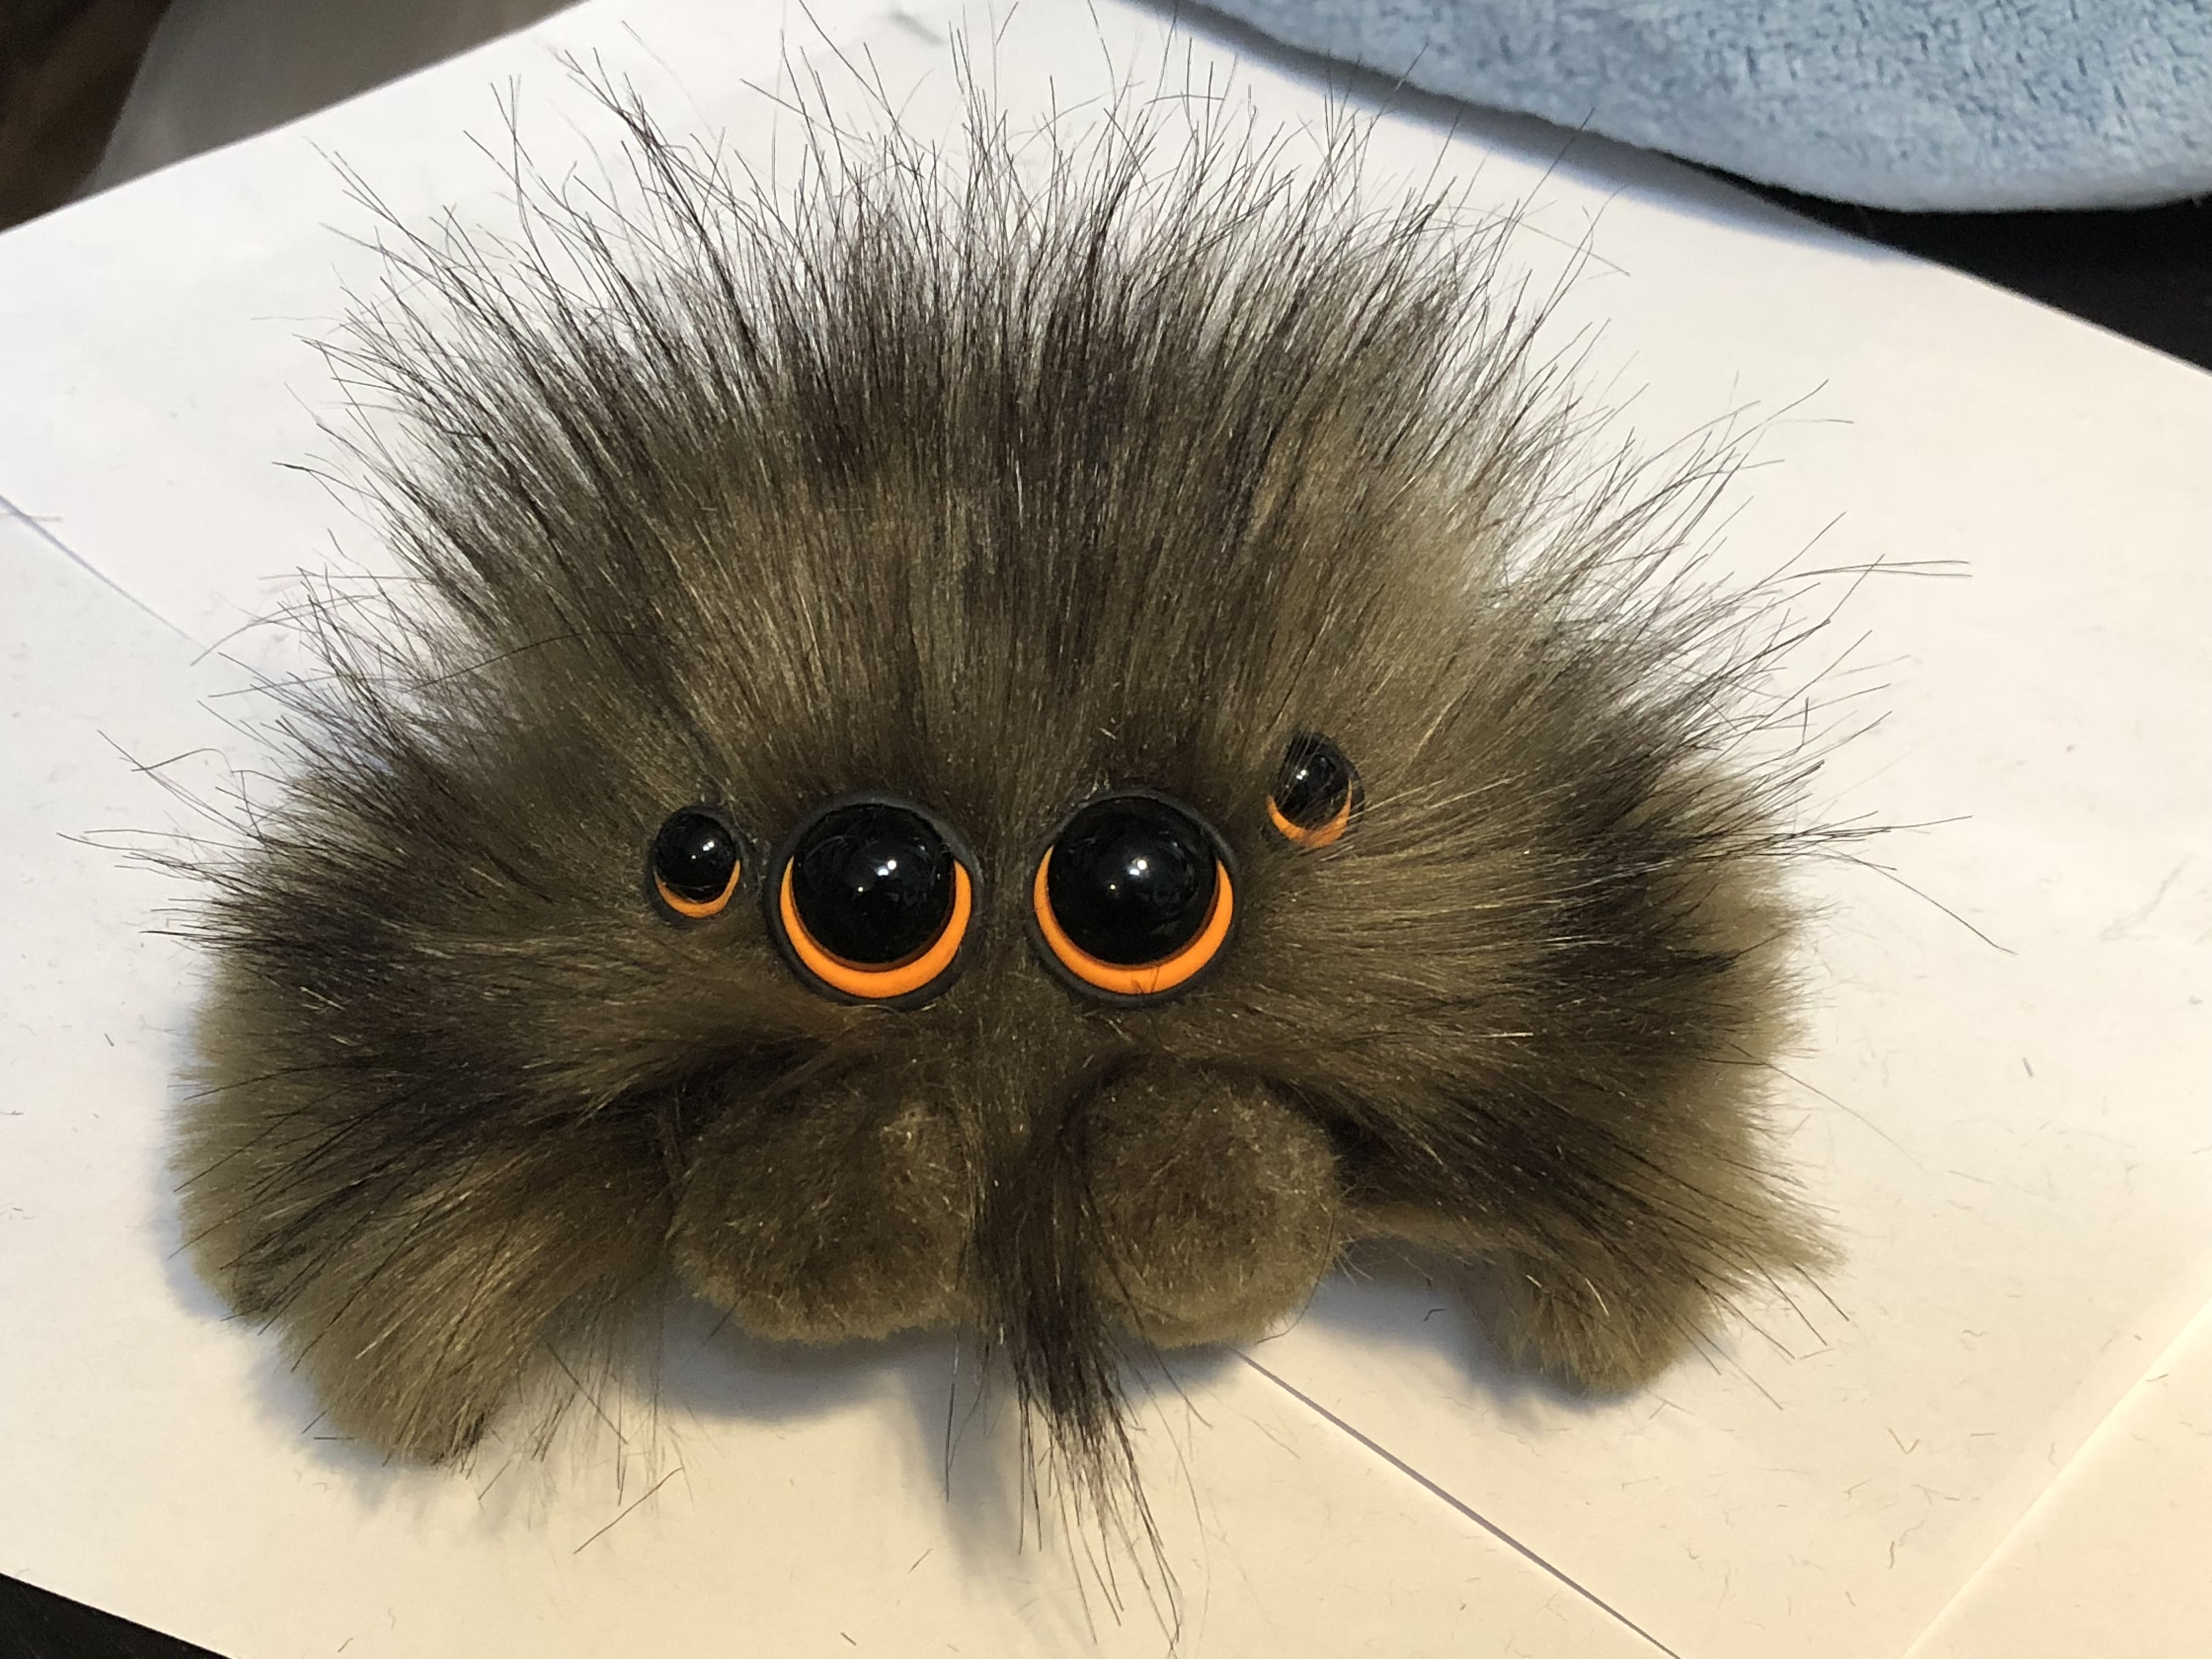 My New Wooly Wookiee Spider Http Etsy Me 2bvejxn Welcome To The